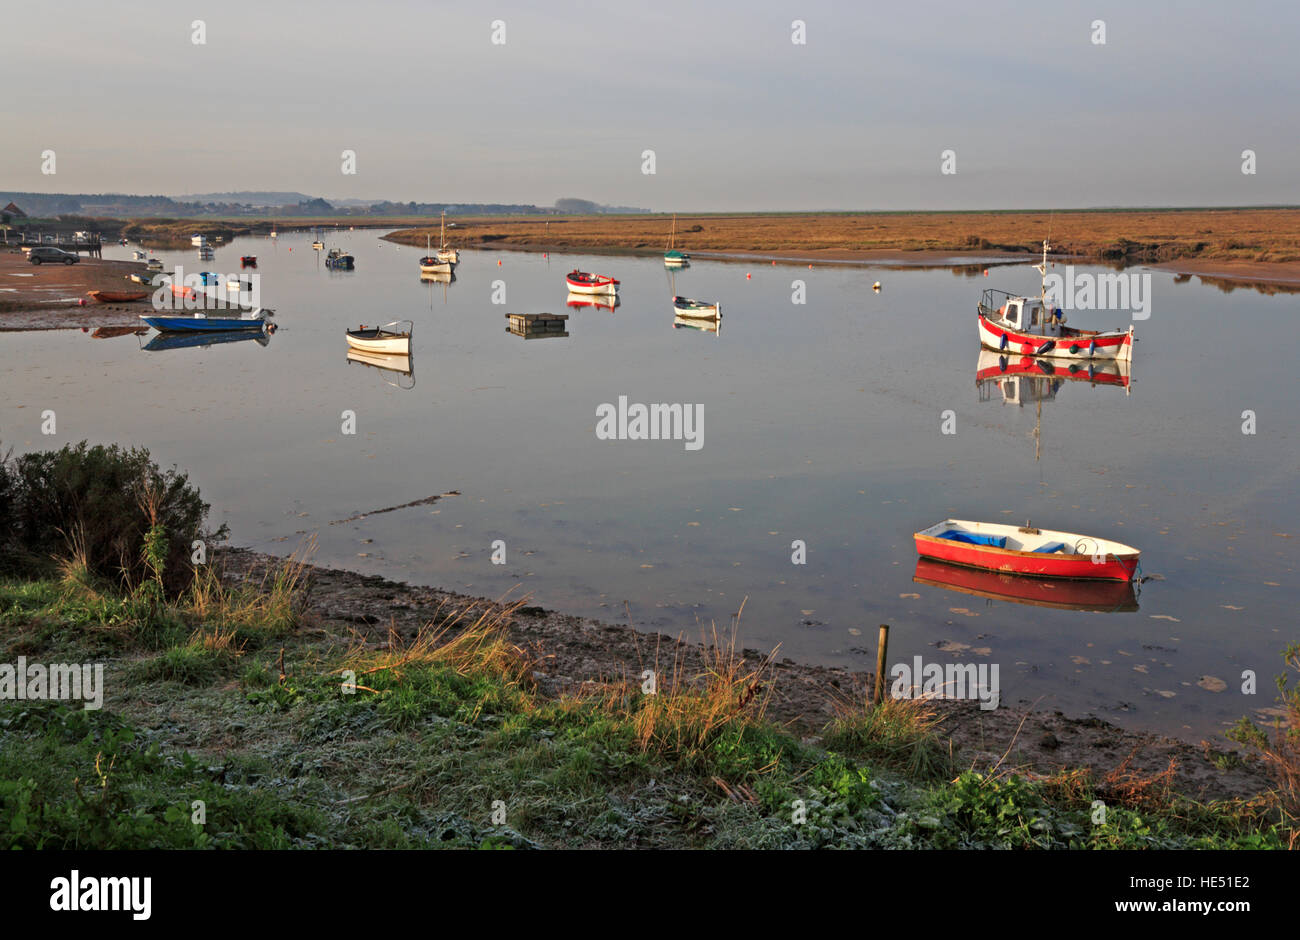 Boats anchored on a December morning at Burnham Overy Staithe, Norfolk, England, United Kingdom. - Stock Image